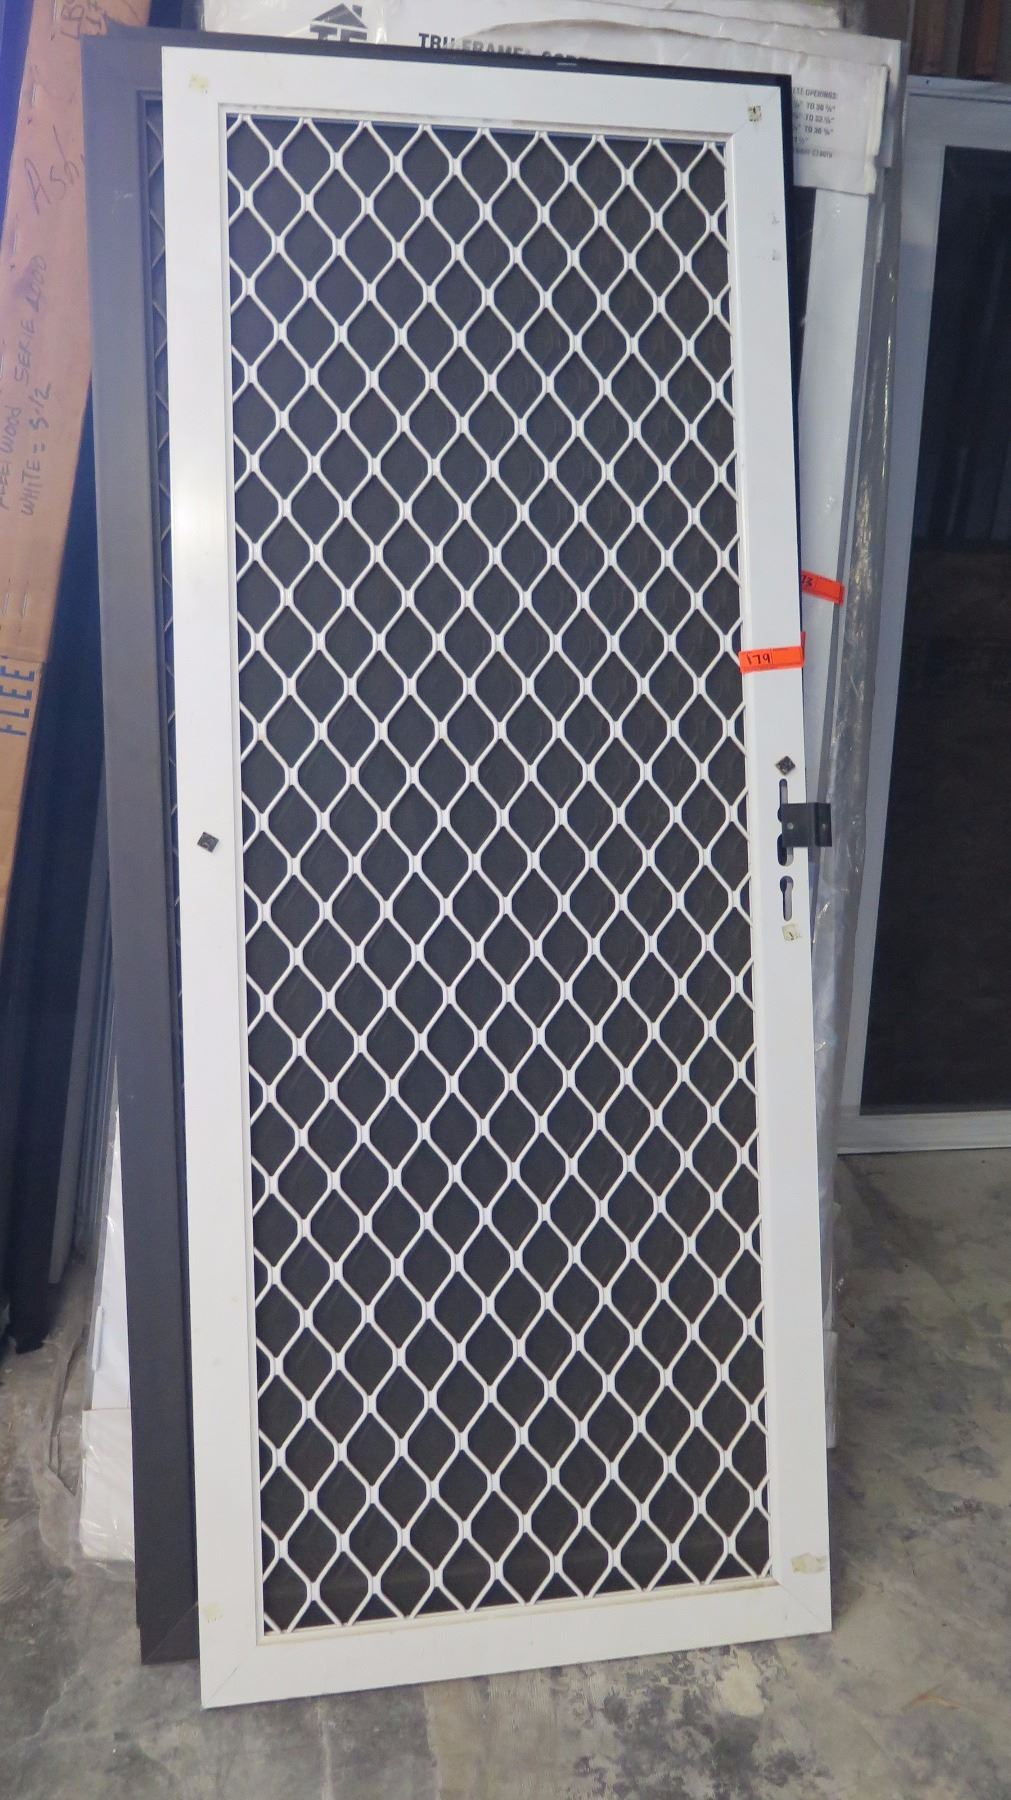 Security Screen Door 31 38 X 79 316 Diamond Pattern Grill